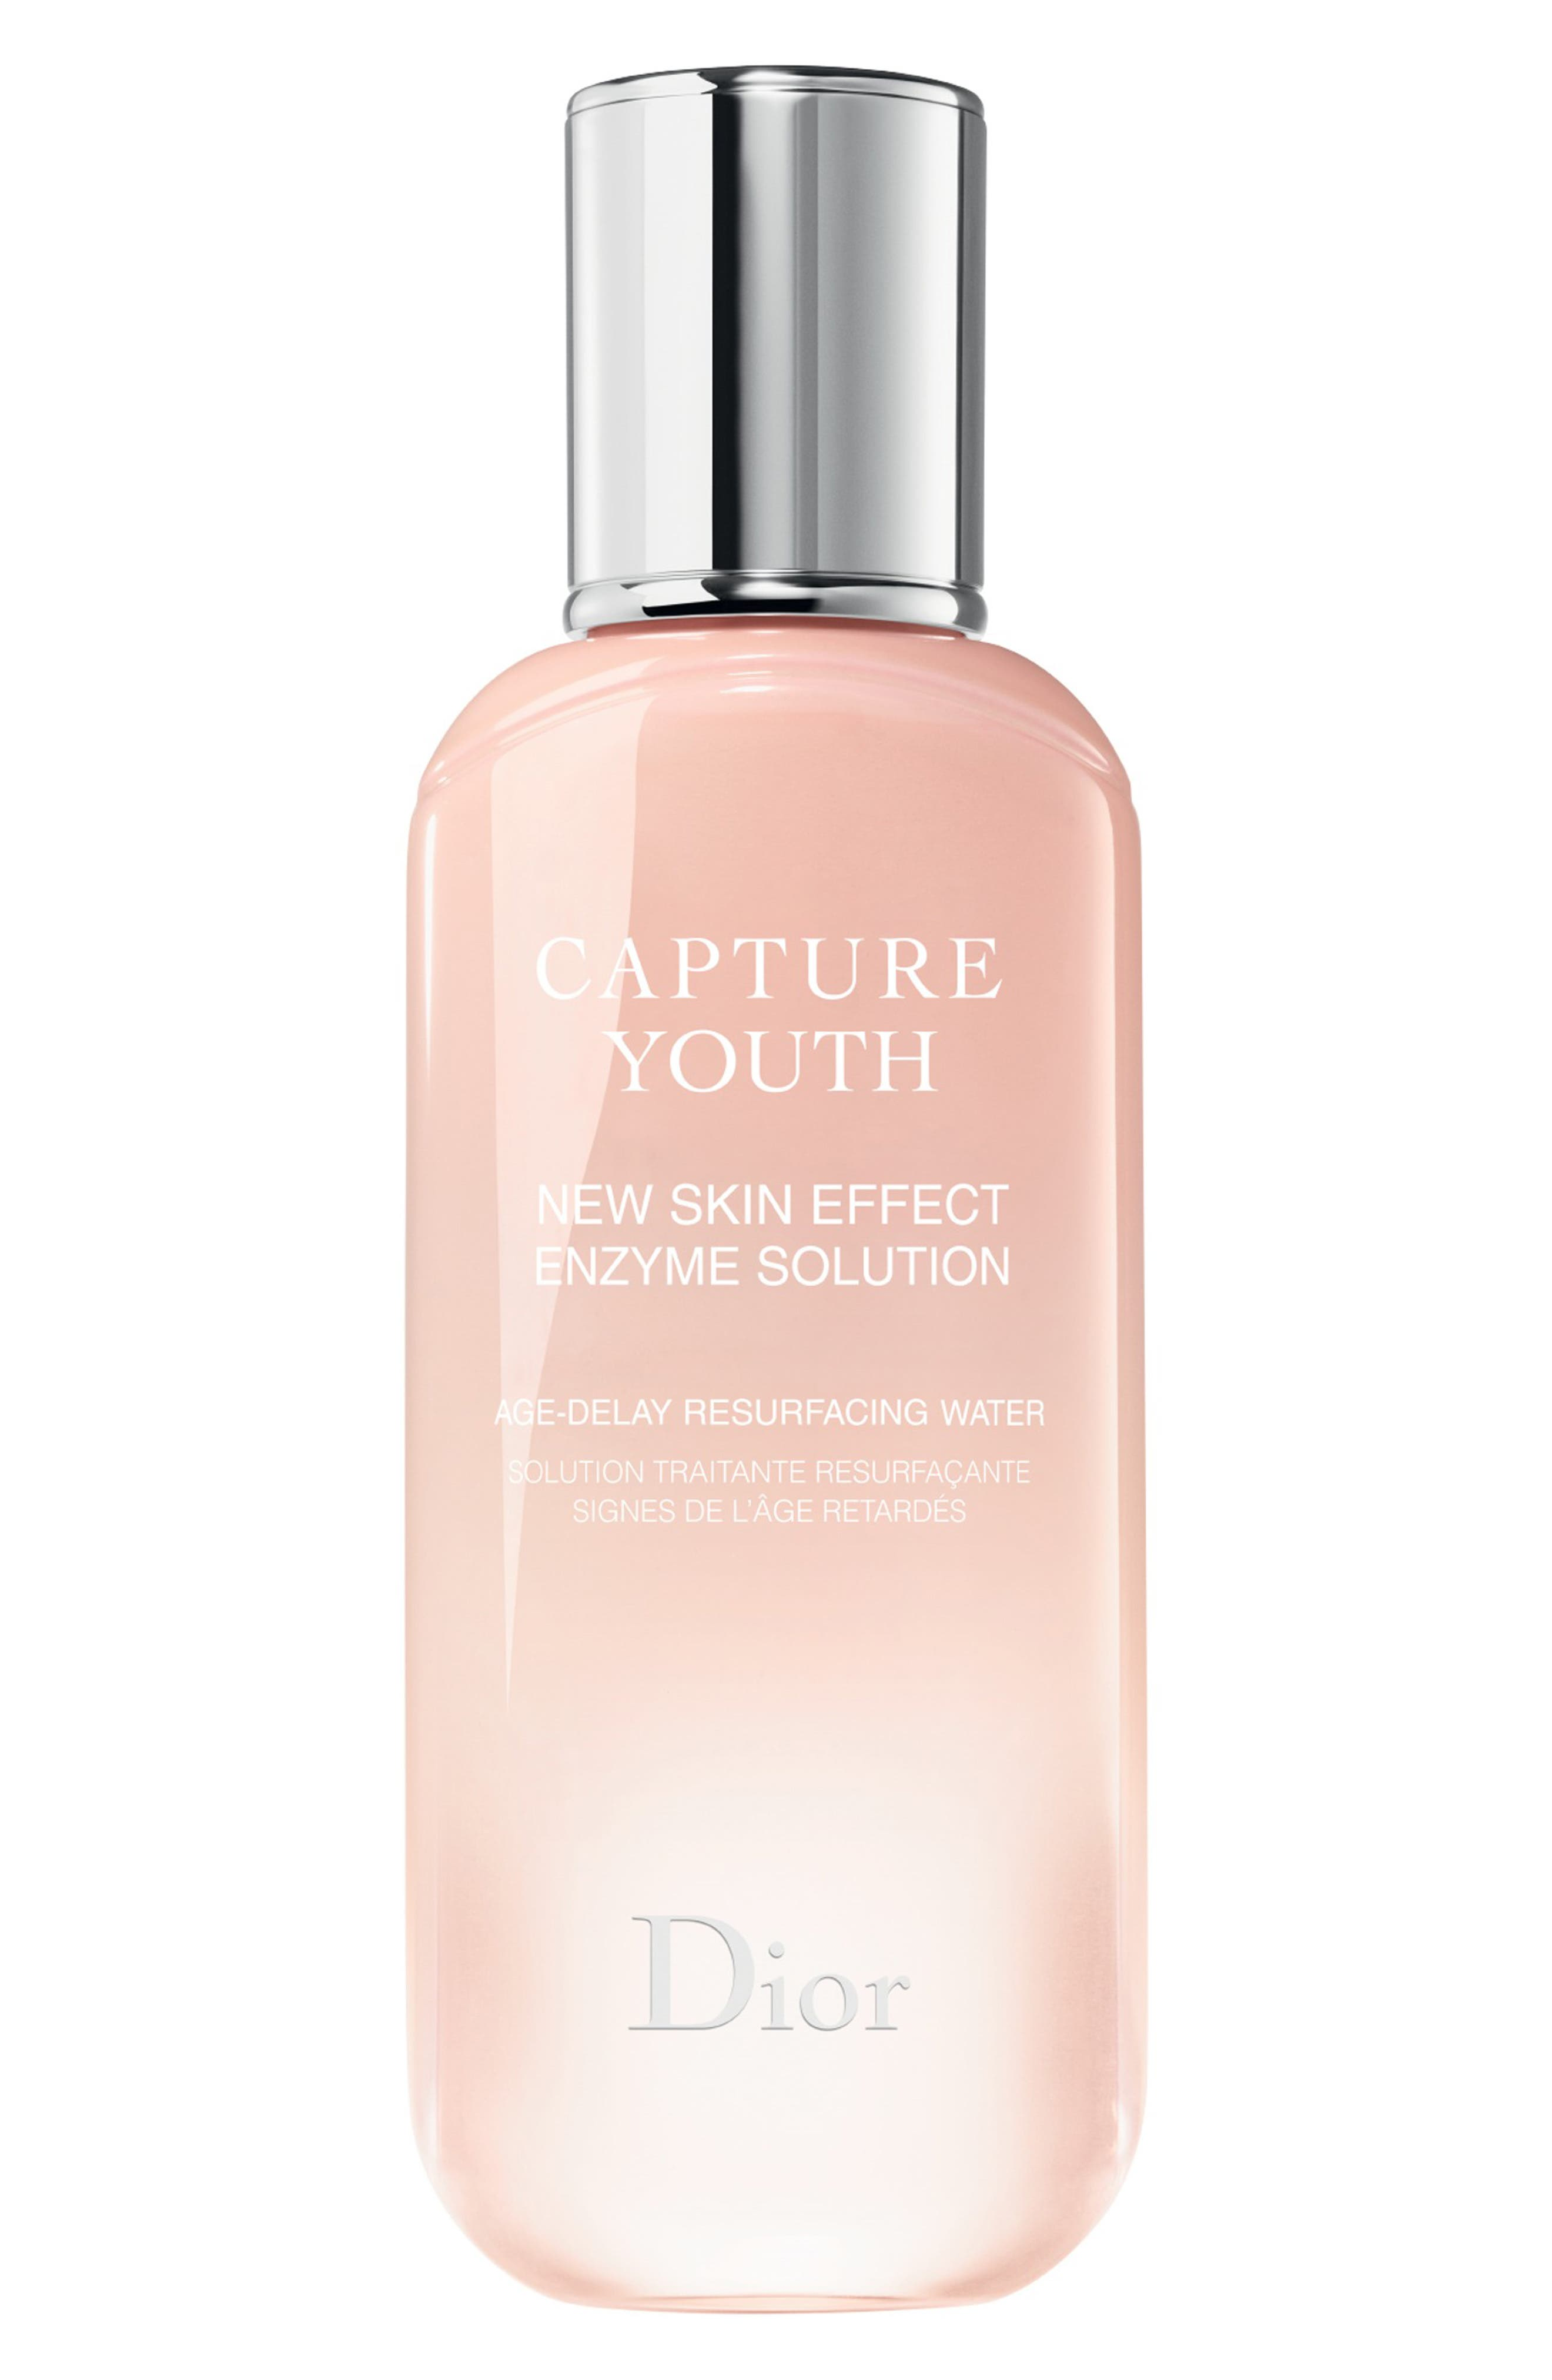 Capture Youth New Skin Effect Enzyme Solution, Main, color, NO COLOR